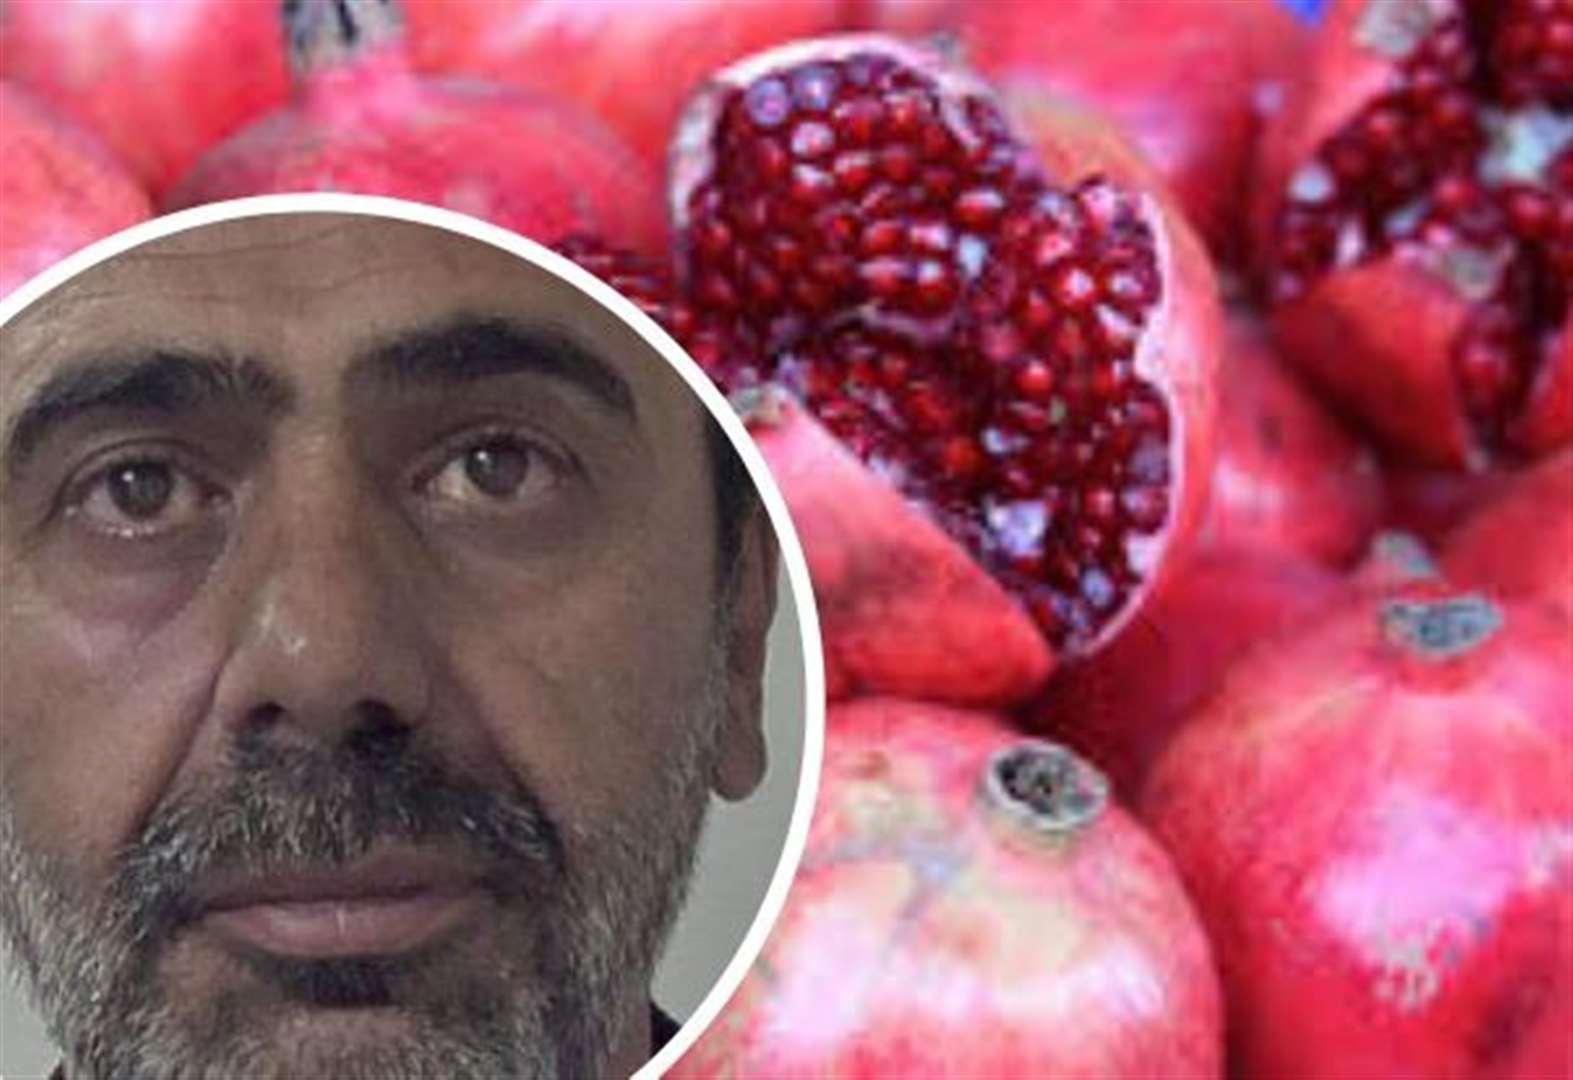 Pomegranate courier caught smuggling migrants